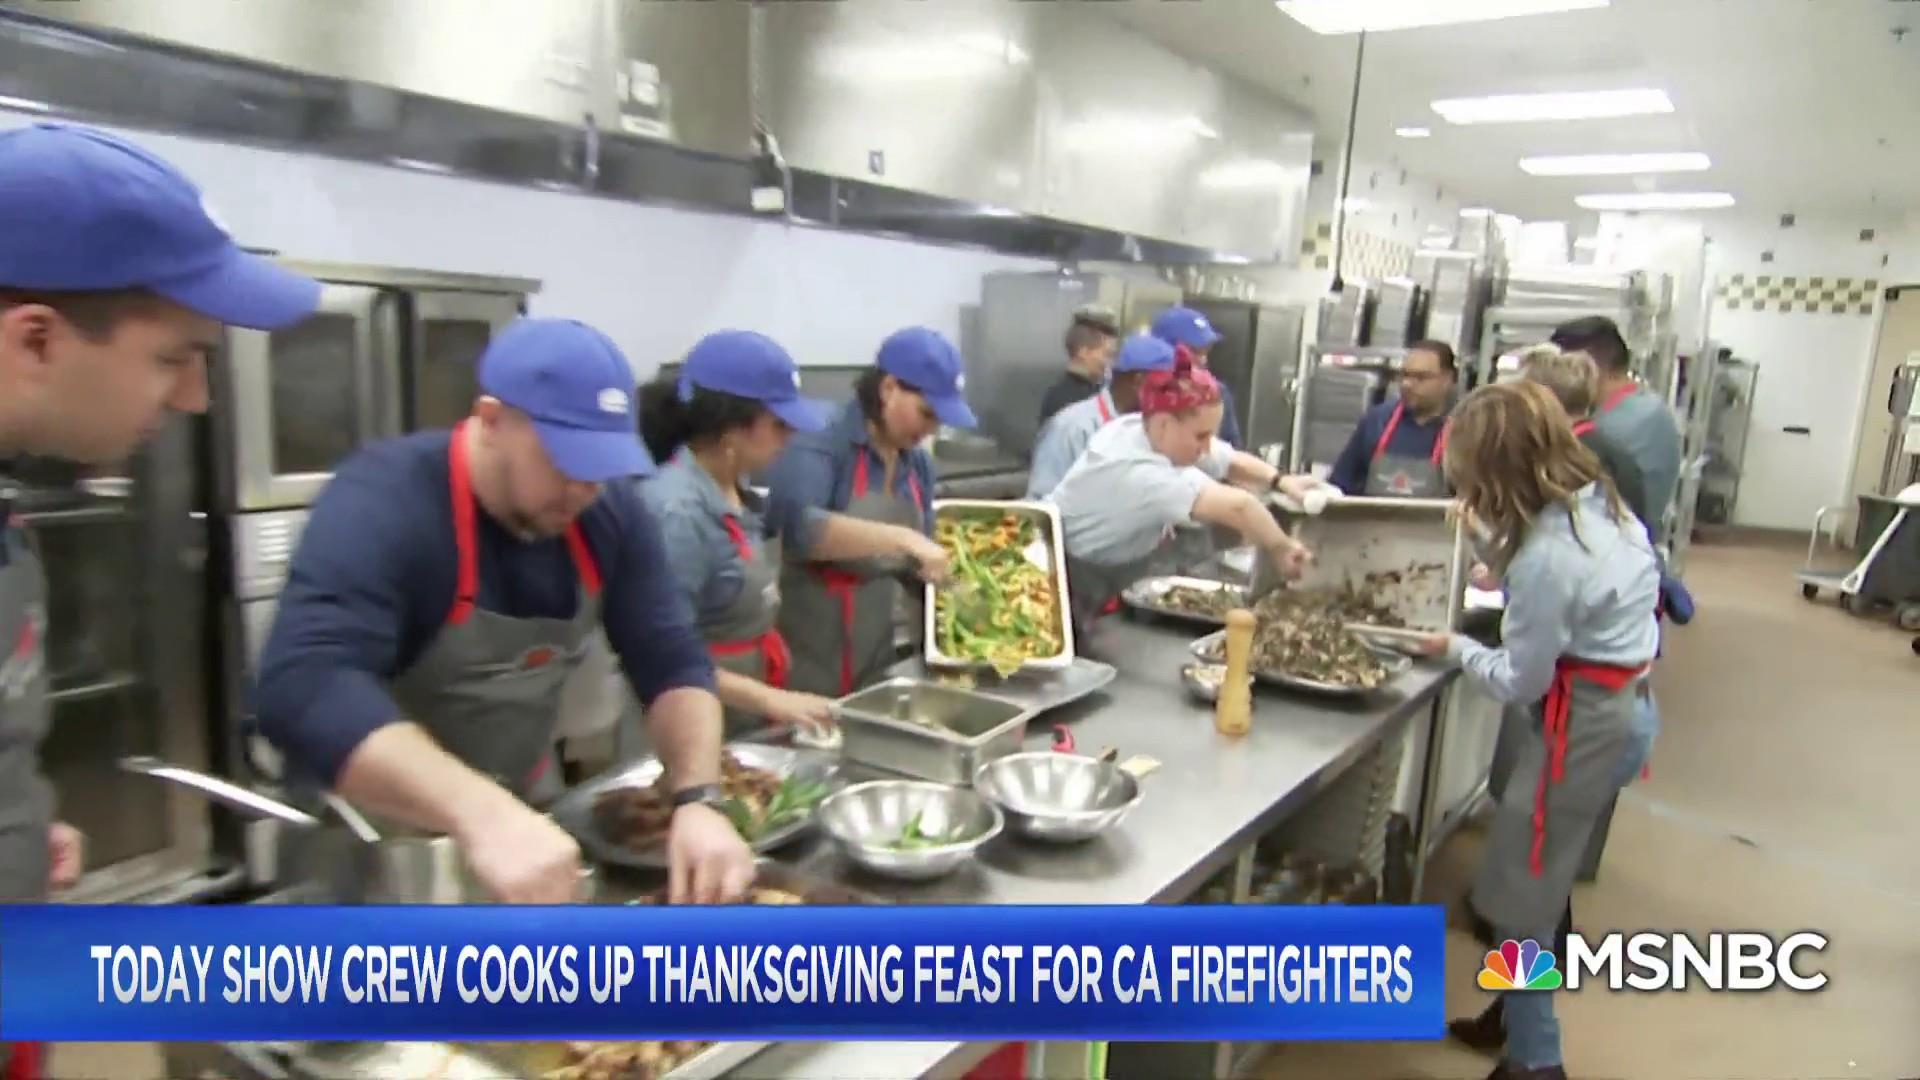 Today Show crew cooks up Thanksgiving feast for California firefighters